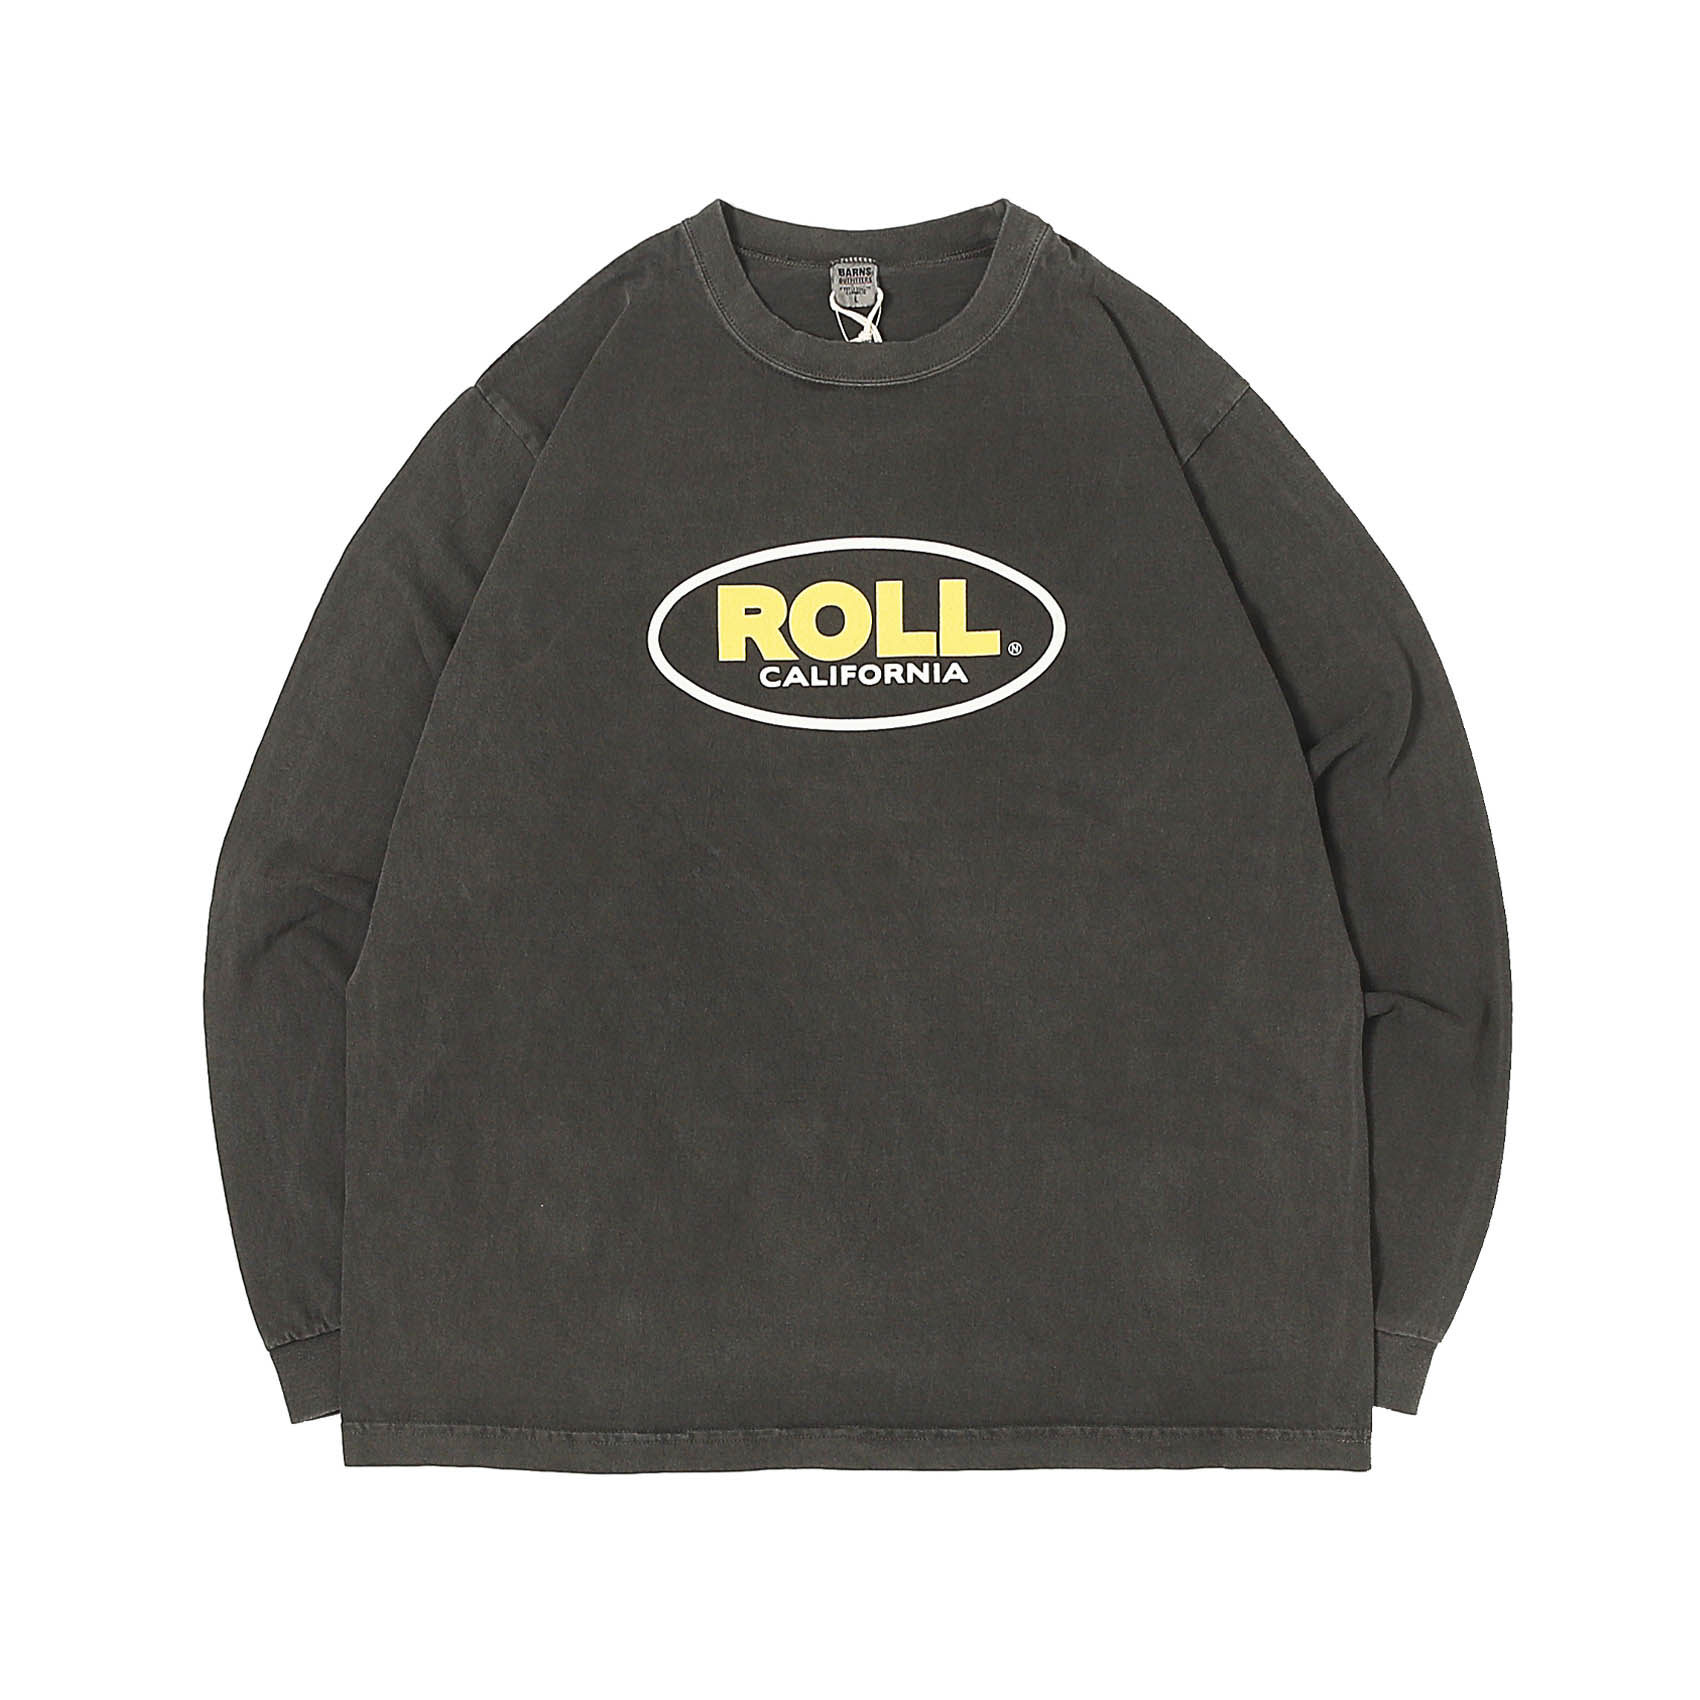 L/S PRINTED TEE - ROLL BLACK